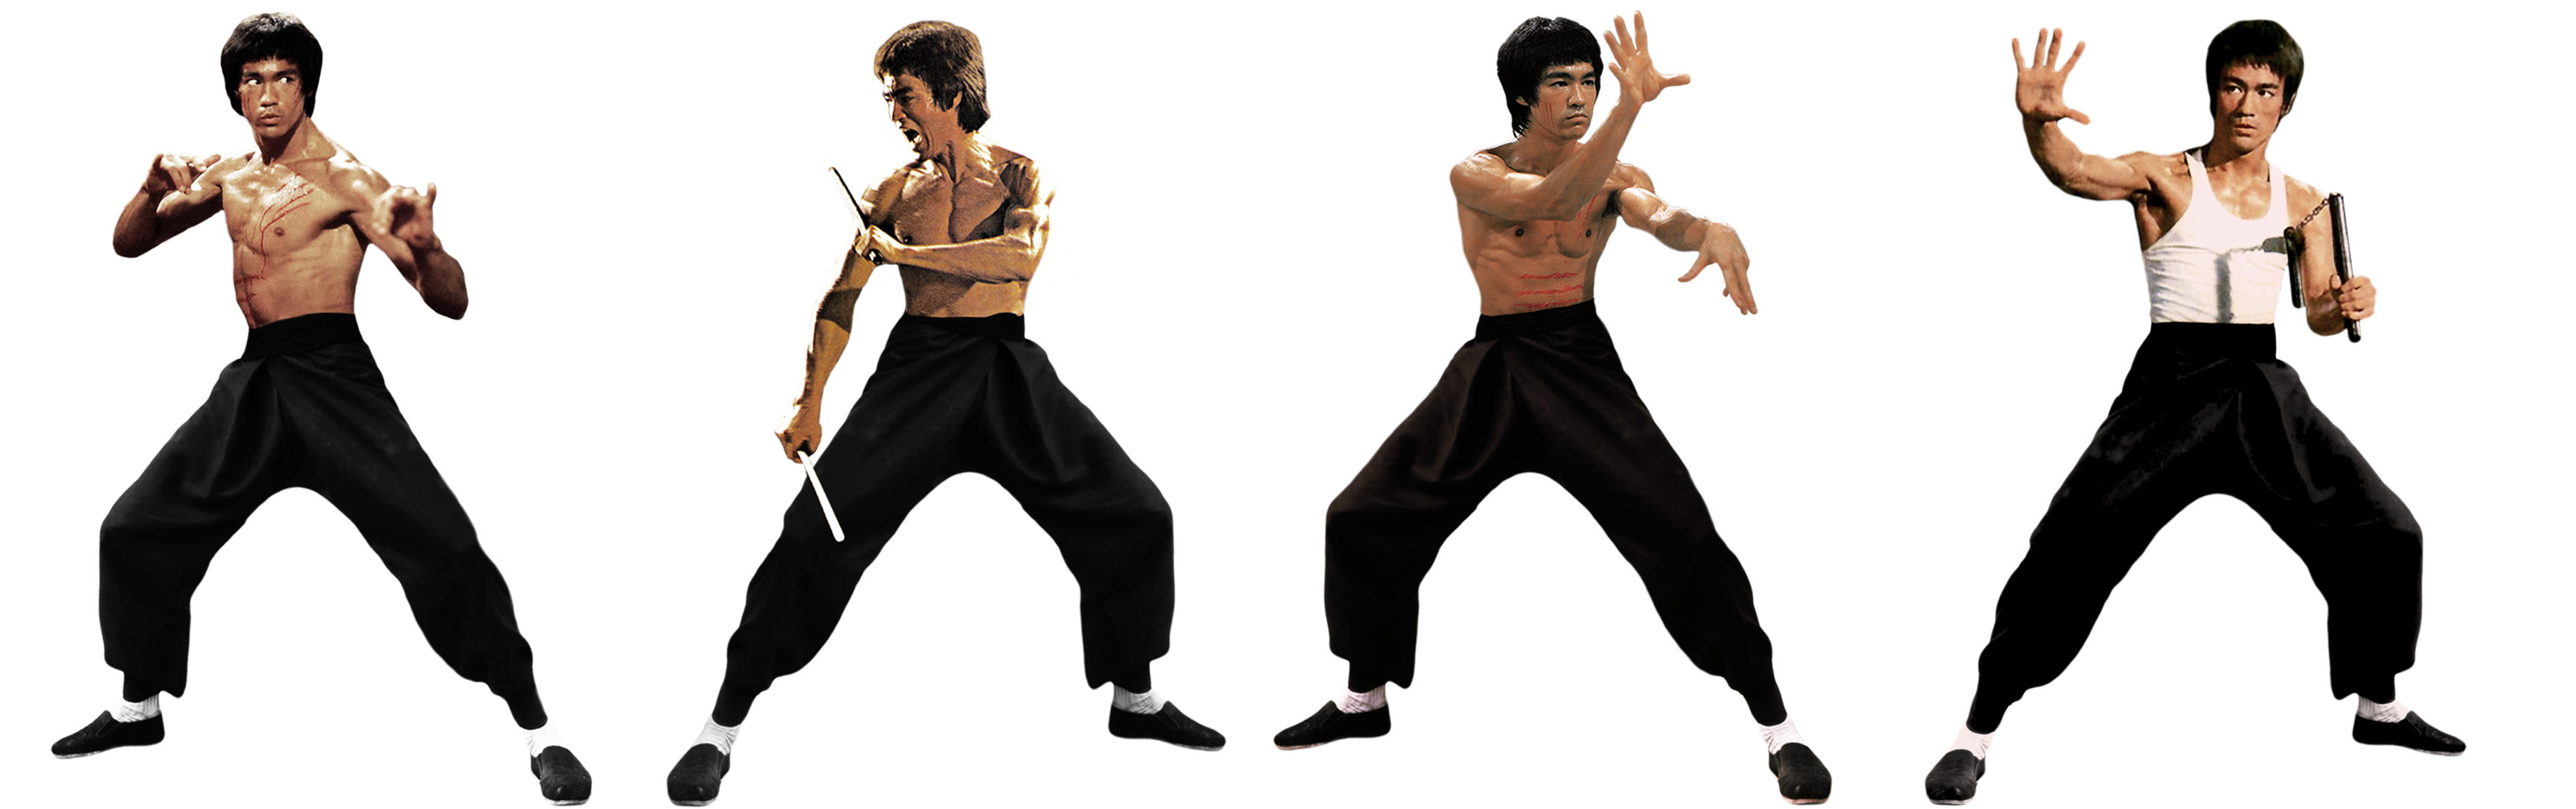 Bruce Lee Transparent Background - Bruce Lee PNG